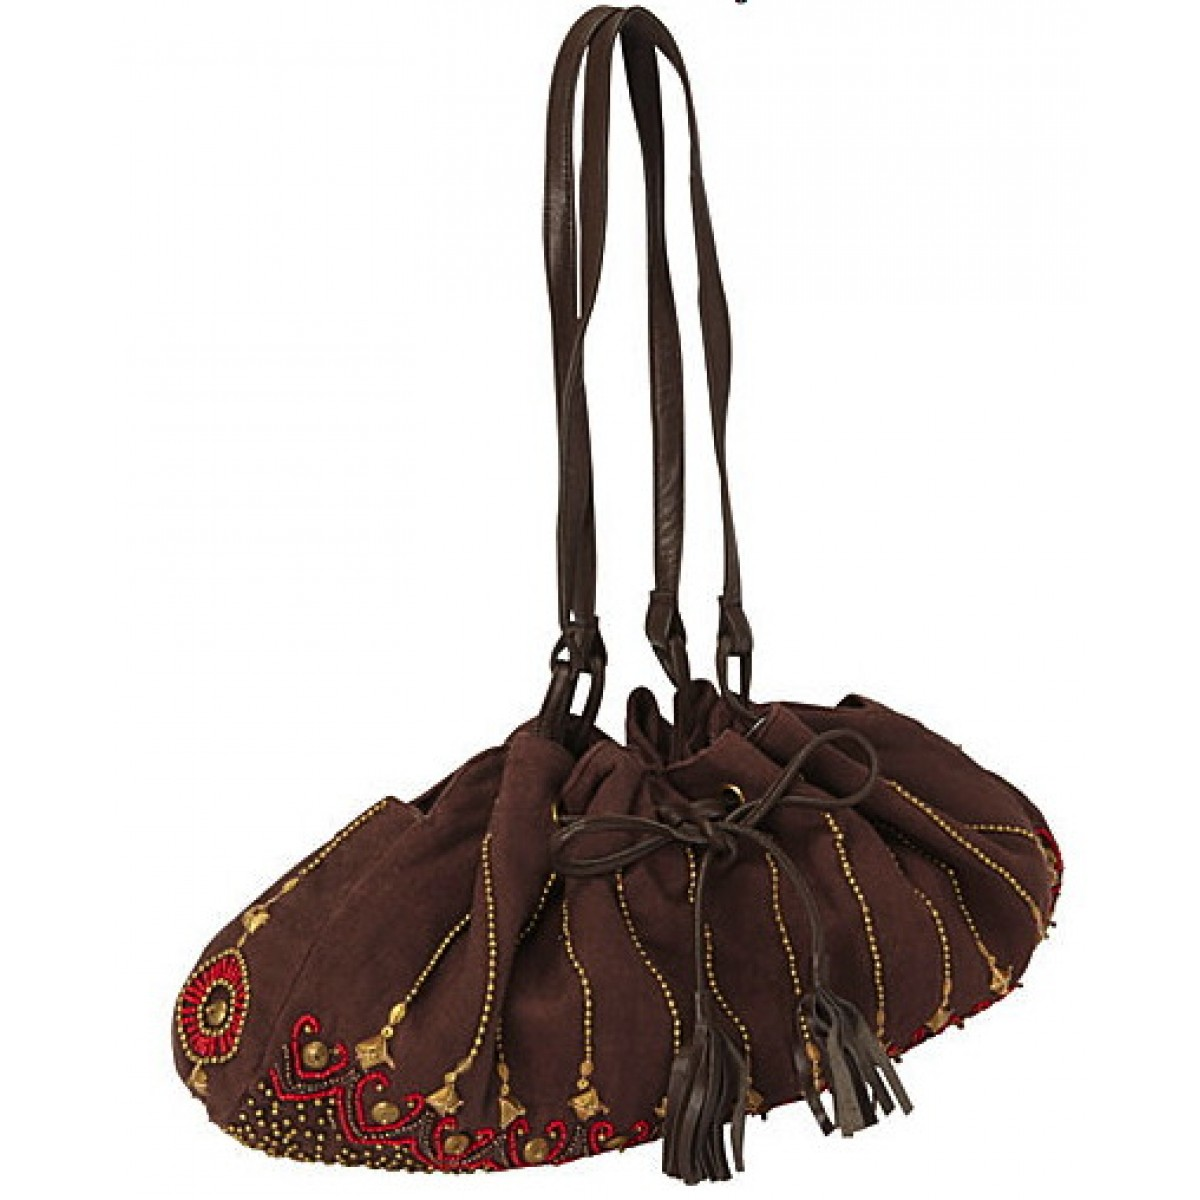 Drawstring Satchel with Beaded Embellishments